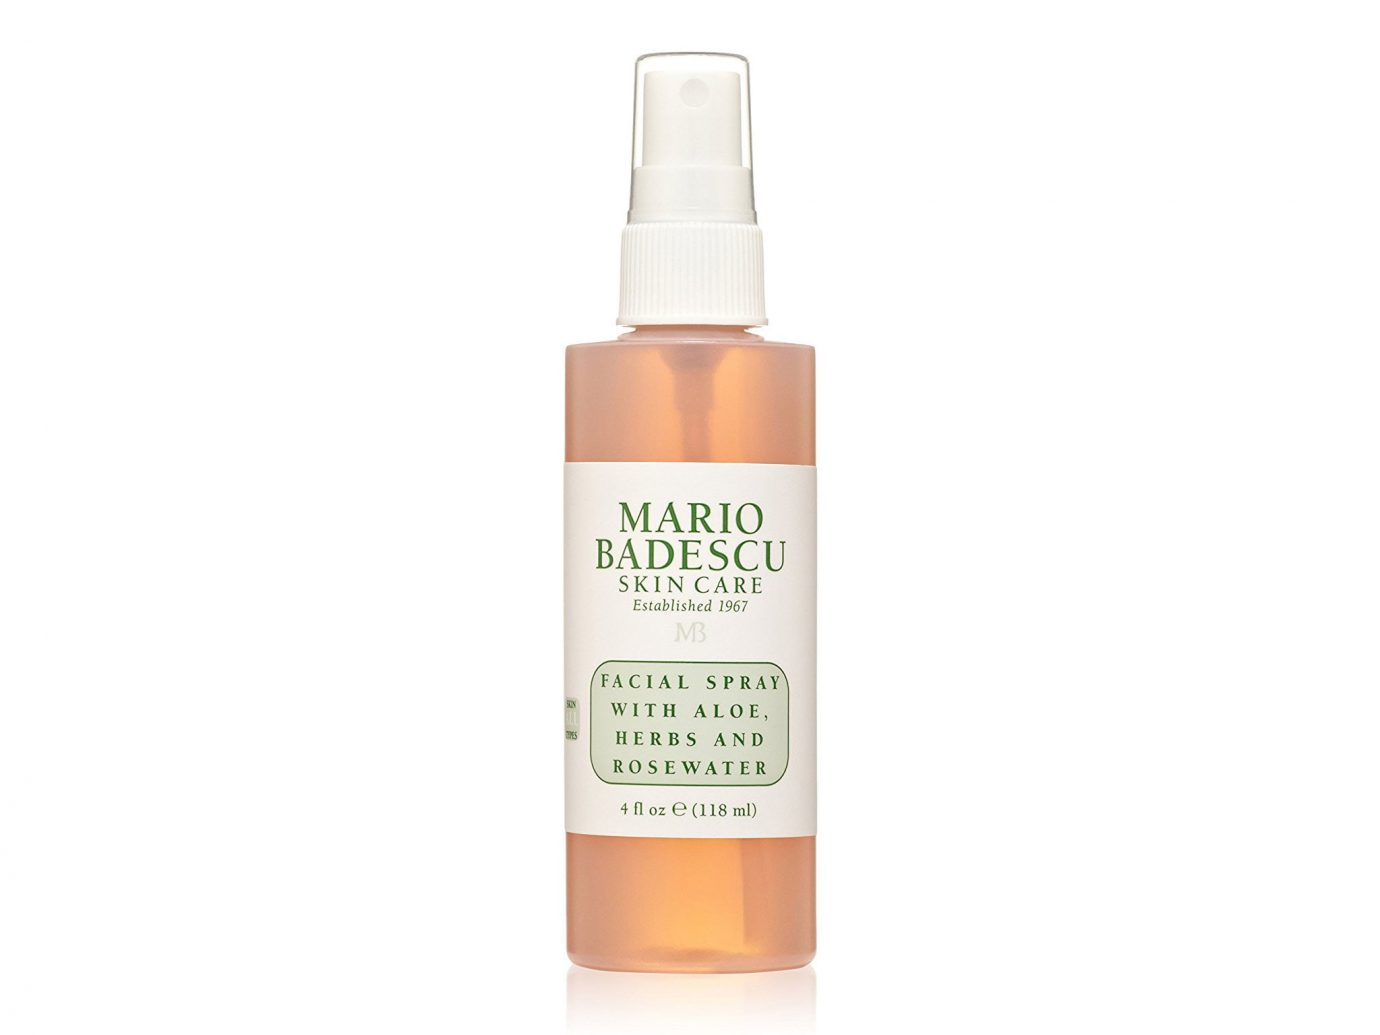 Beauty Travel Shop toiletry product liquid lotion skin care